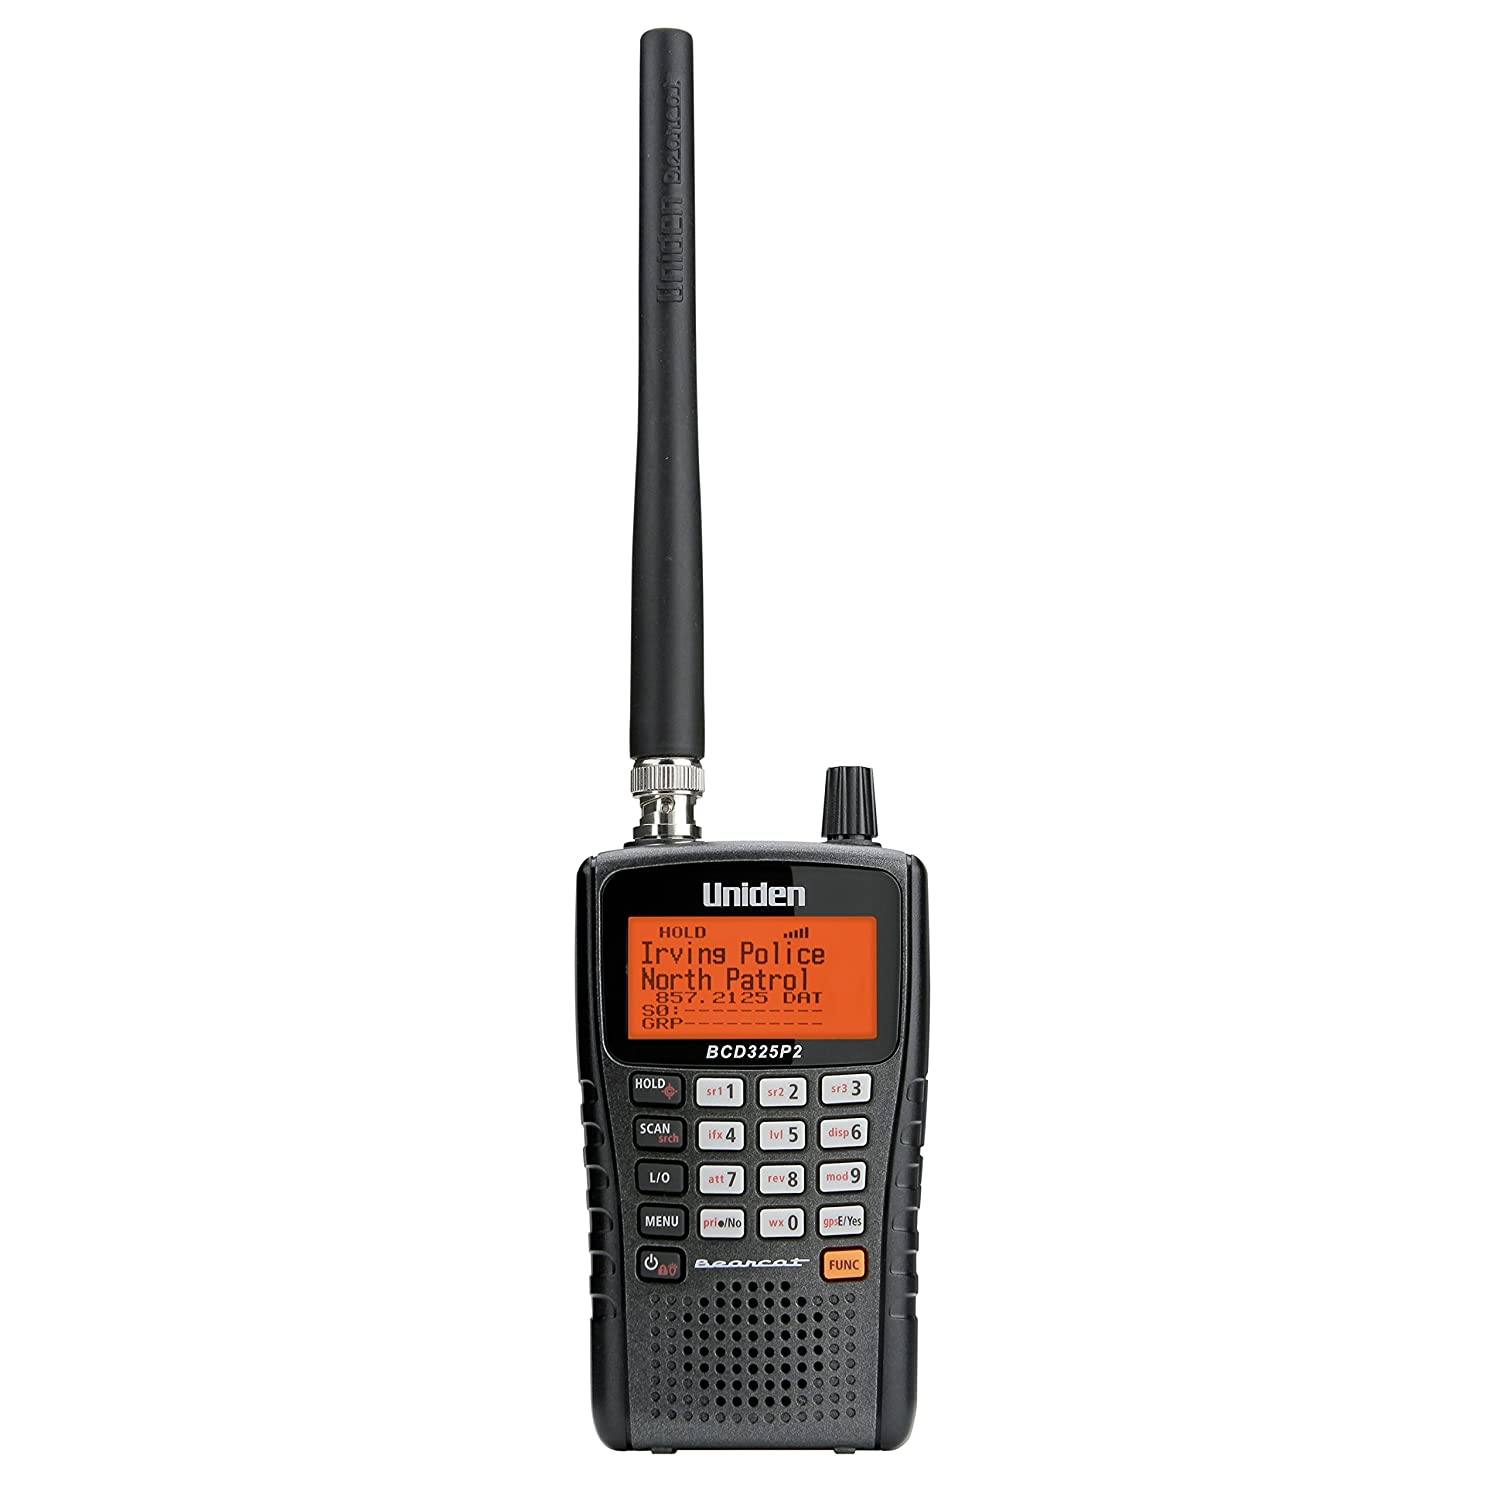 Uniden BCD325P2 Handheld TrunkTracker V Scanner